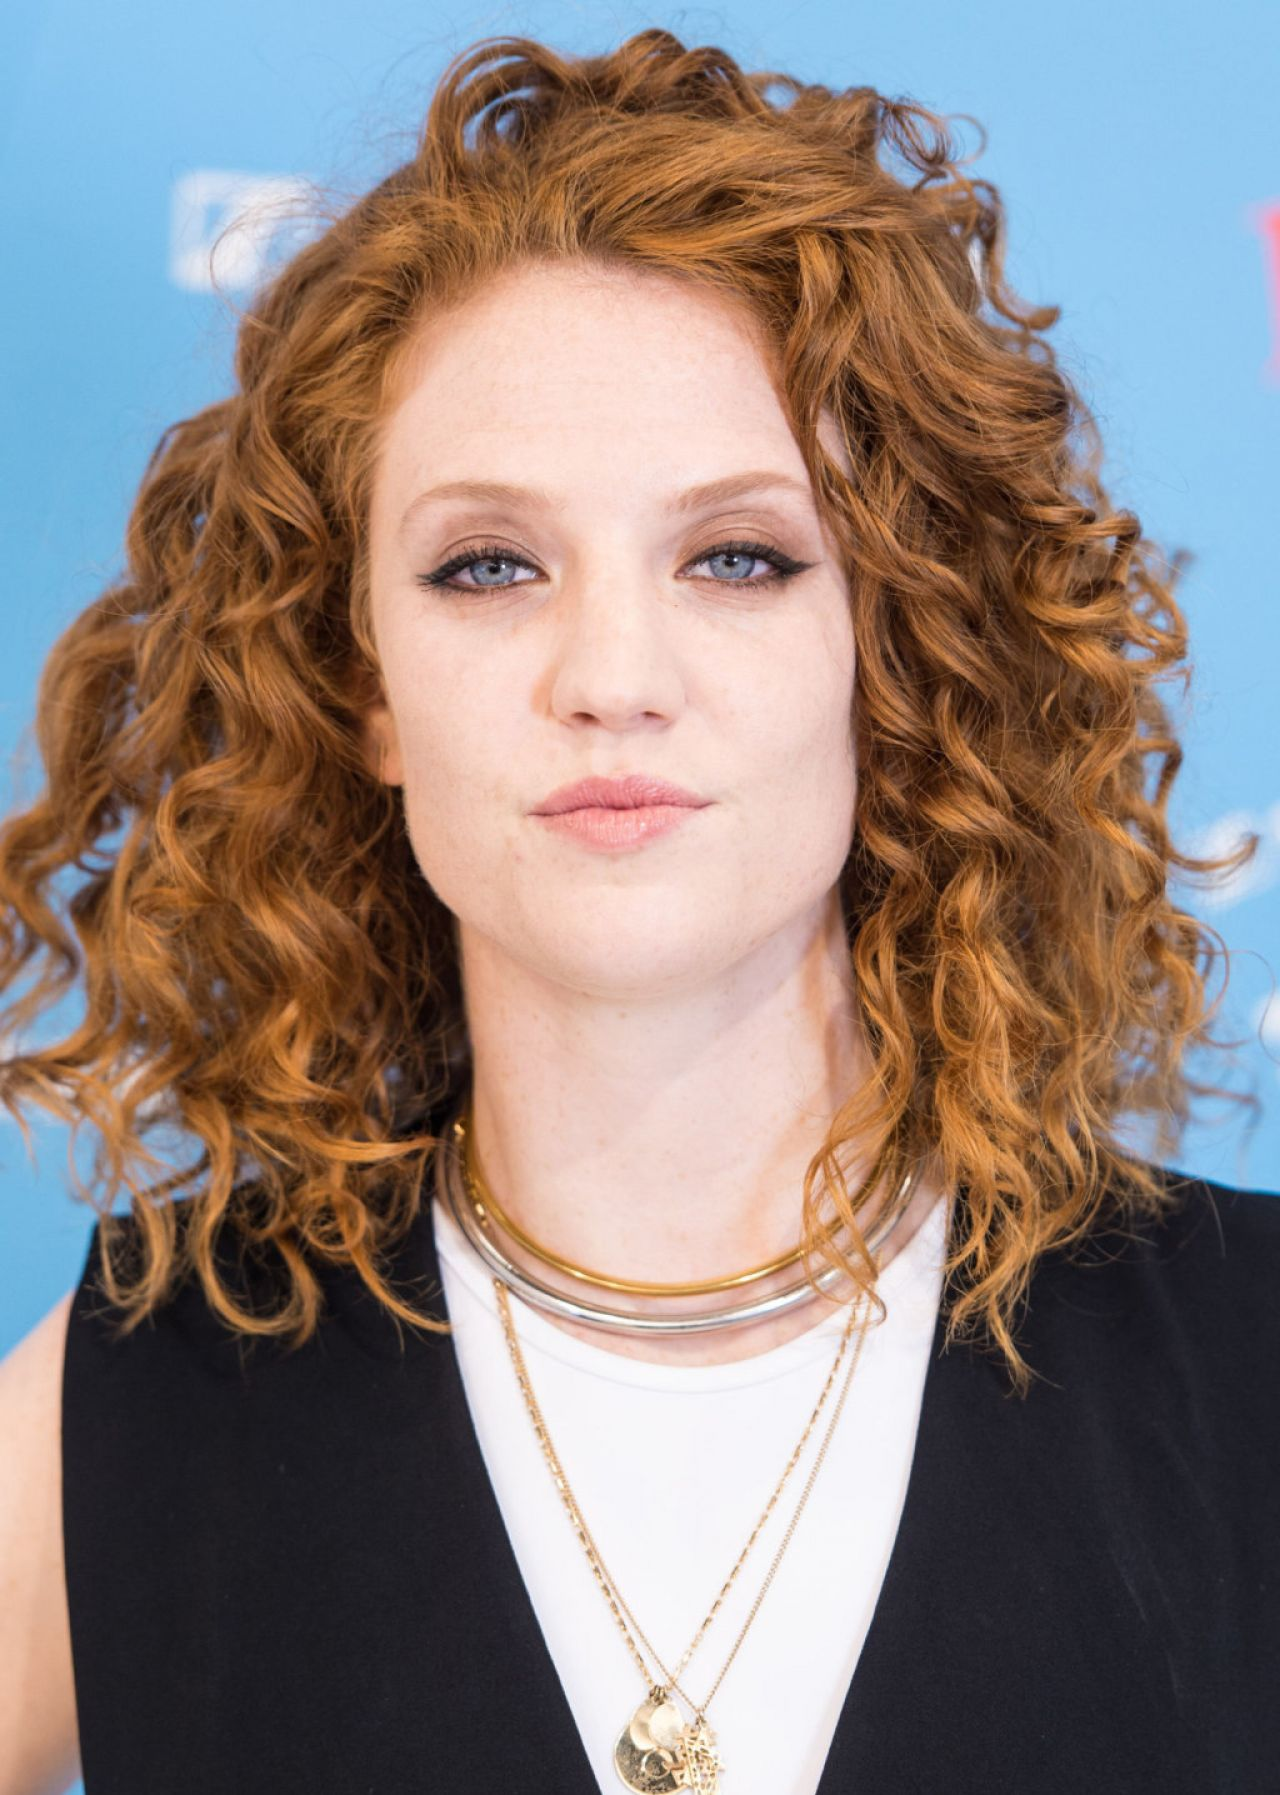 Fotos Jess Glynne nude photos 2019